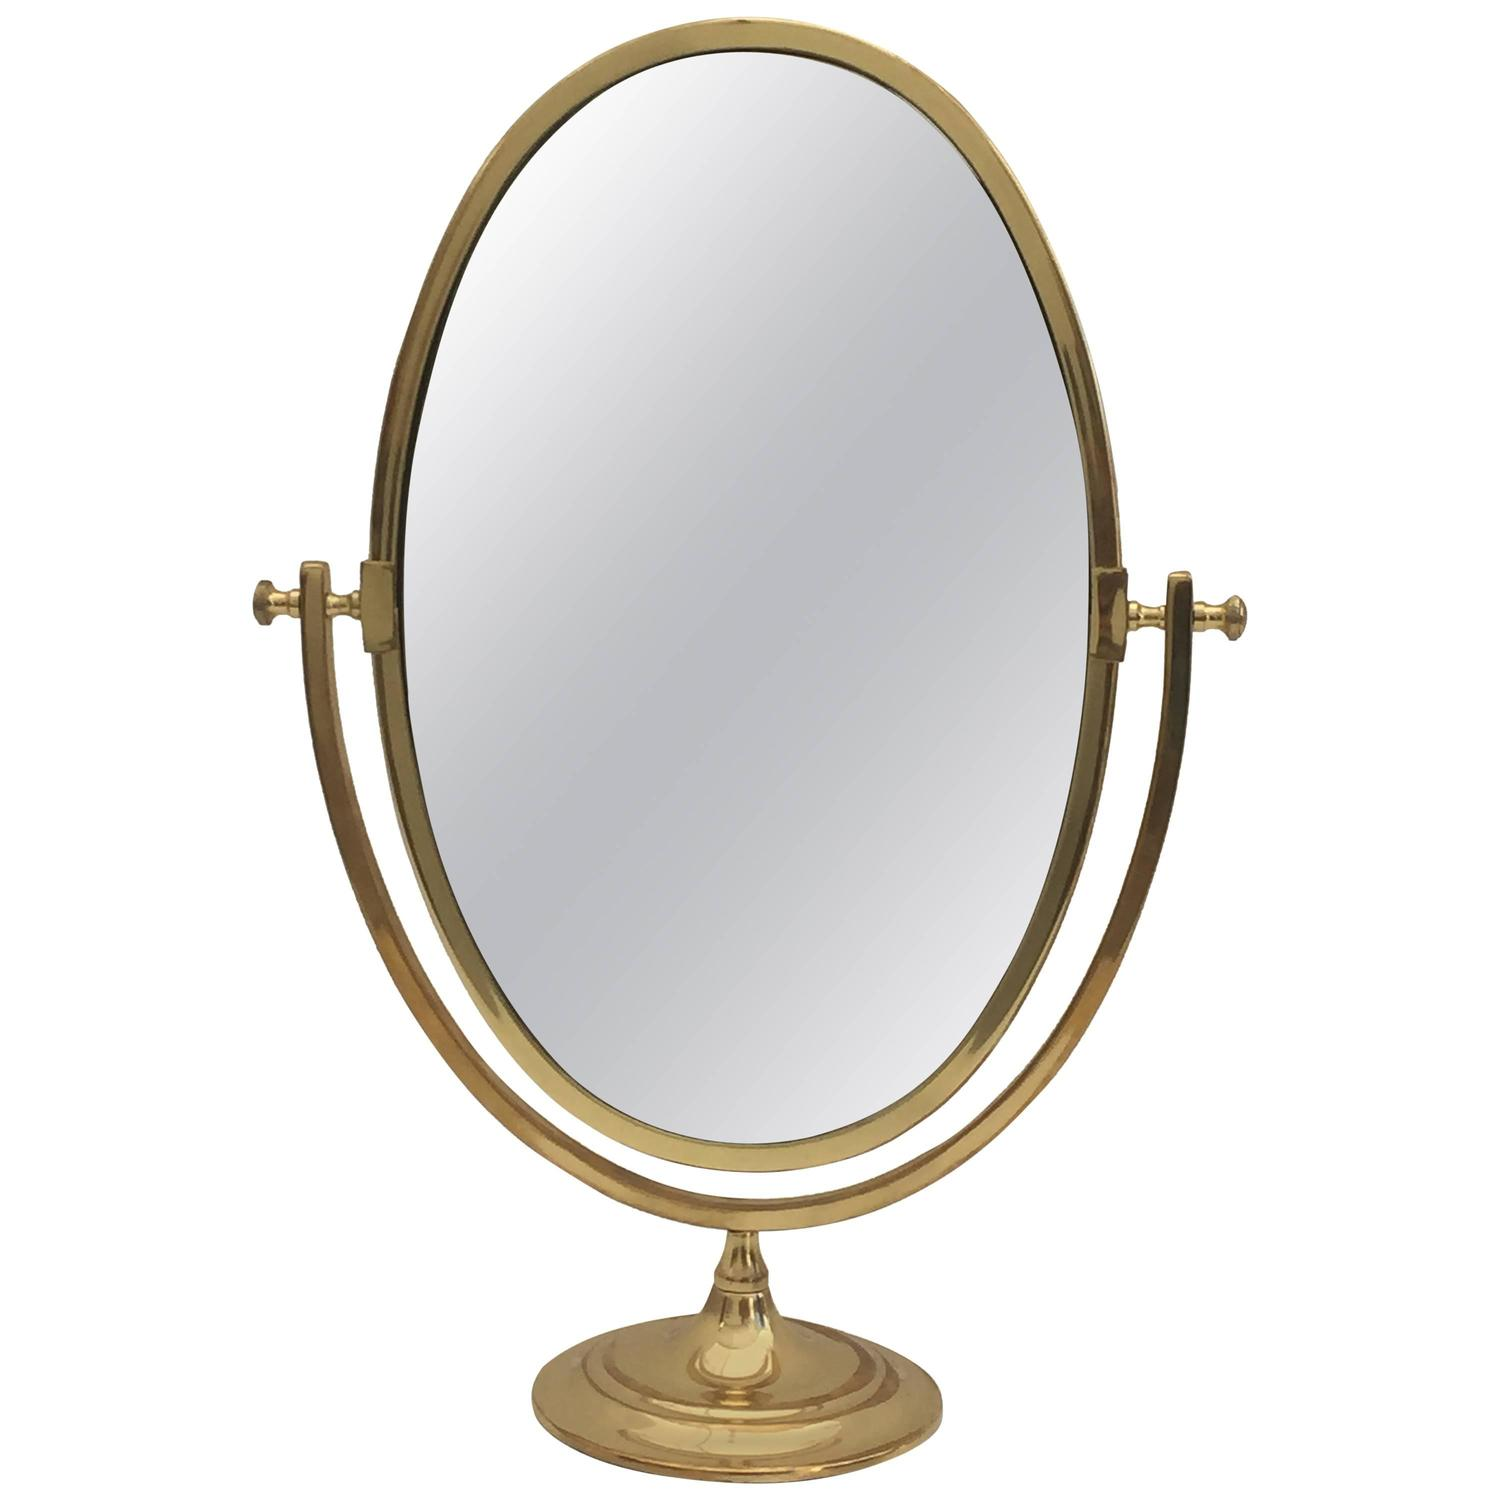 Oval brass vanity mirror at 1stdibs for Mirror vanity